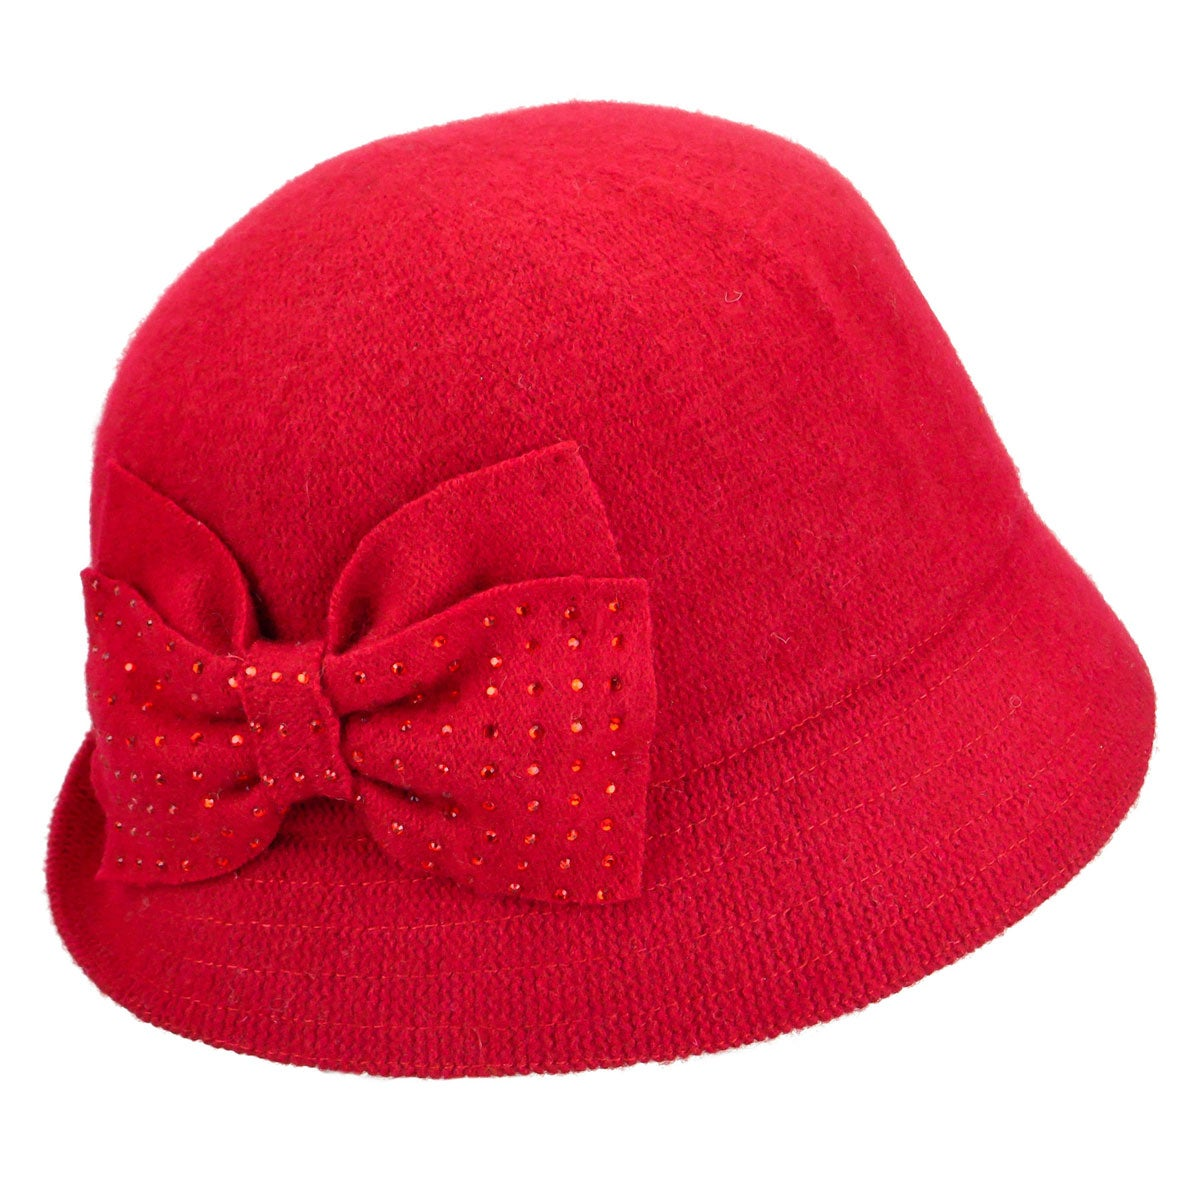 1920s Hat Styles for Women- History Beyond the Cloche Hat Betty Wool Cloche $50.00 AT vintagedancer.com